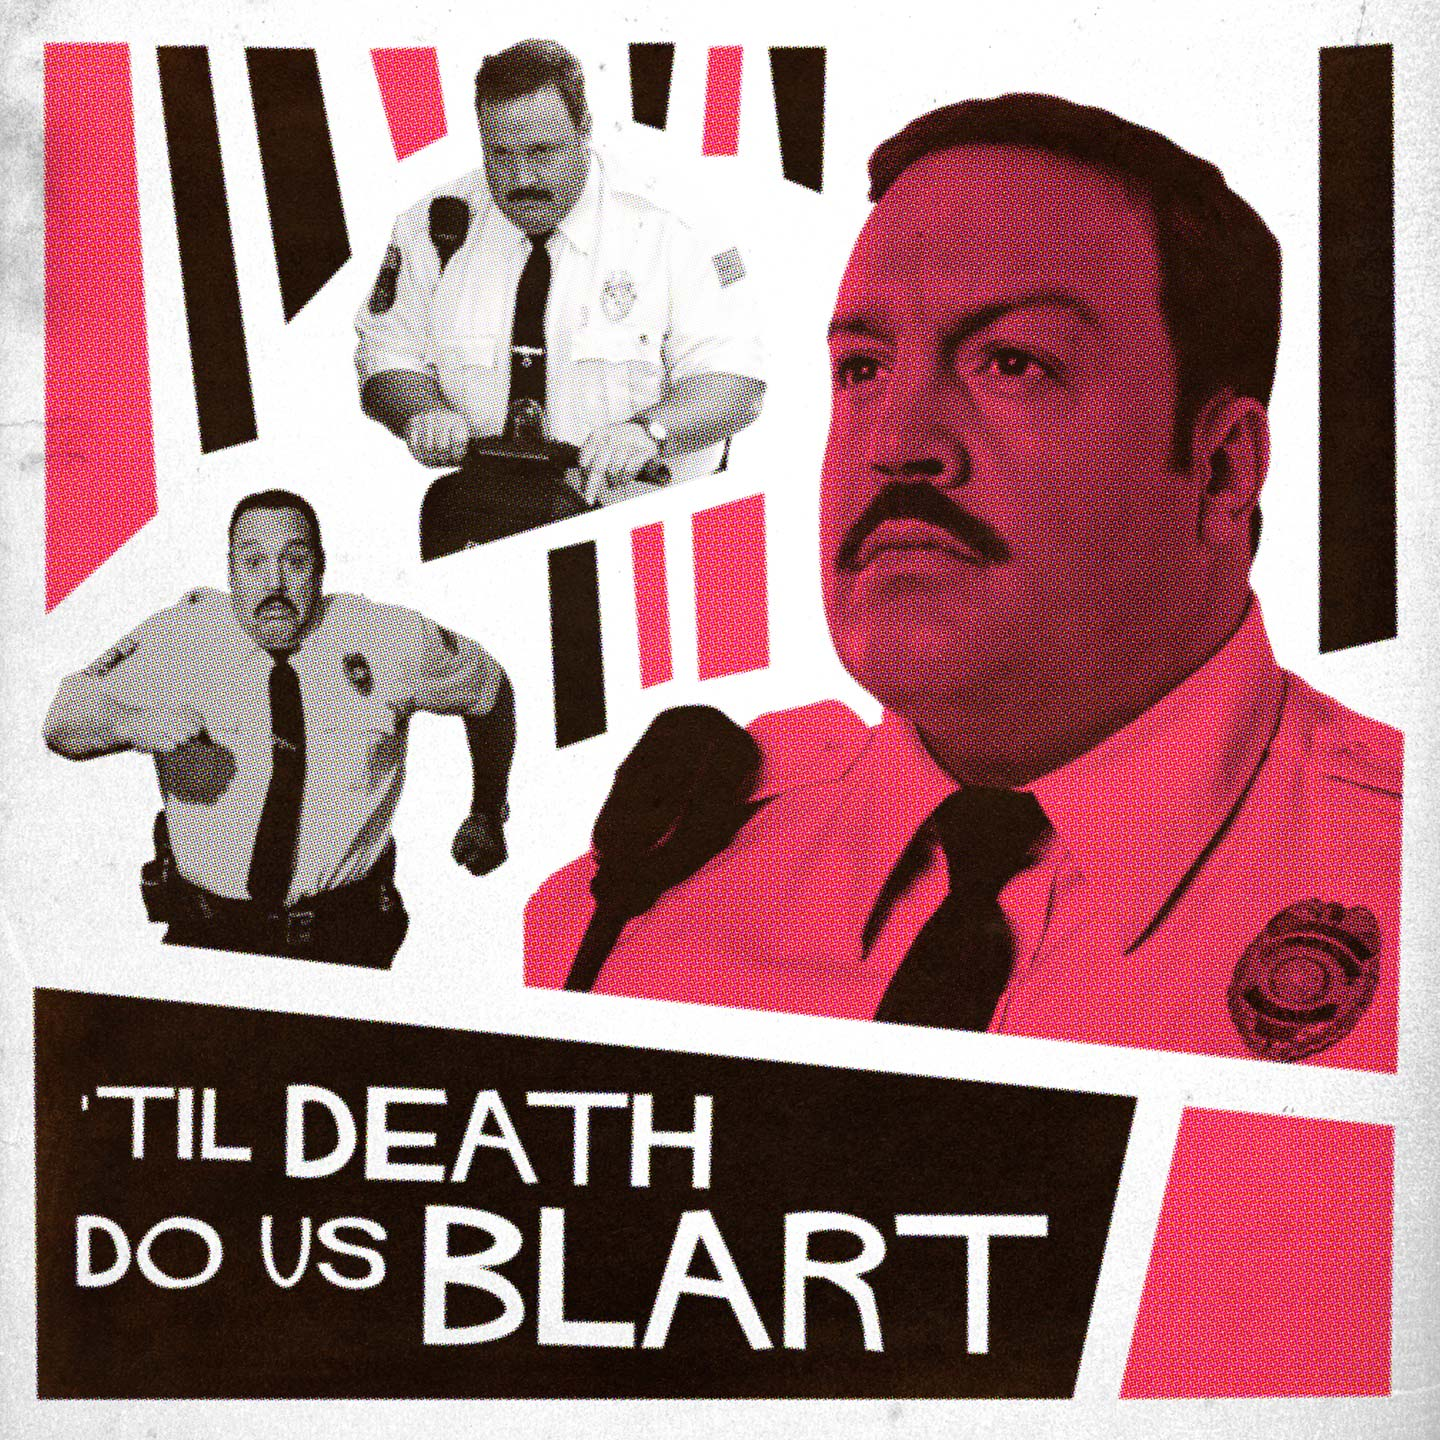 Okay, so, Til Death Do Us Blart is an annual show that drops every American Thanksgiving, in which myself, my brothers Justin and Travis, and  Worst Idea of All Time  hosts Guy Montgomery and Tim Batt watch and discuss Paul Blart Mall Cop 2. If one of us ever dies, we will be replaced by a new host who must join the others in continuing the dark ceremony. This podcast will outlive us all, reaching forward, into infinity.